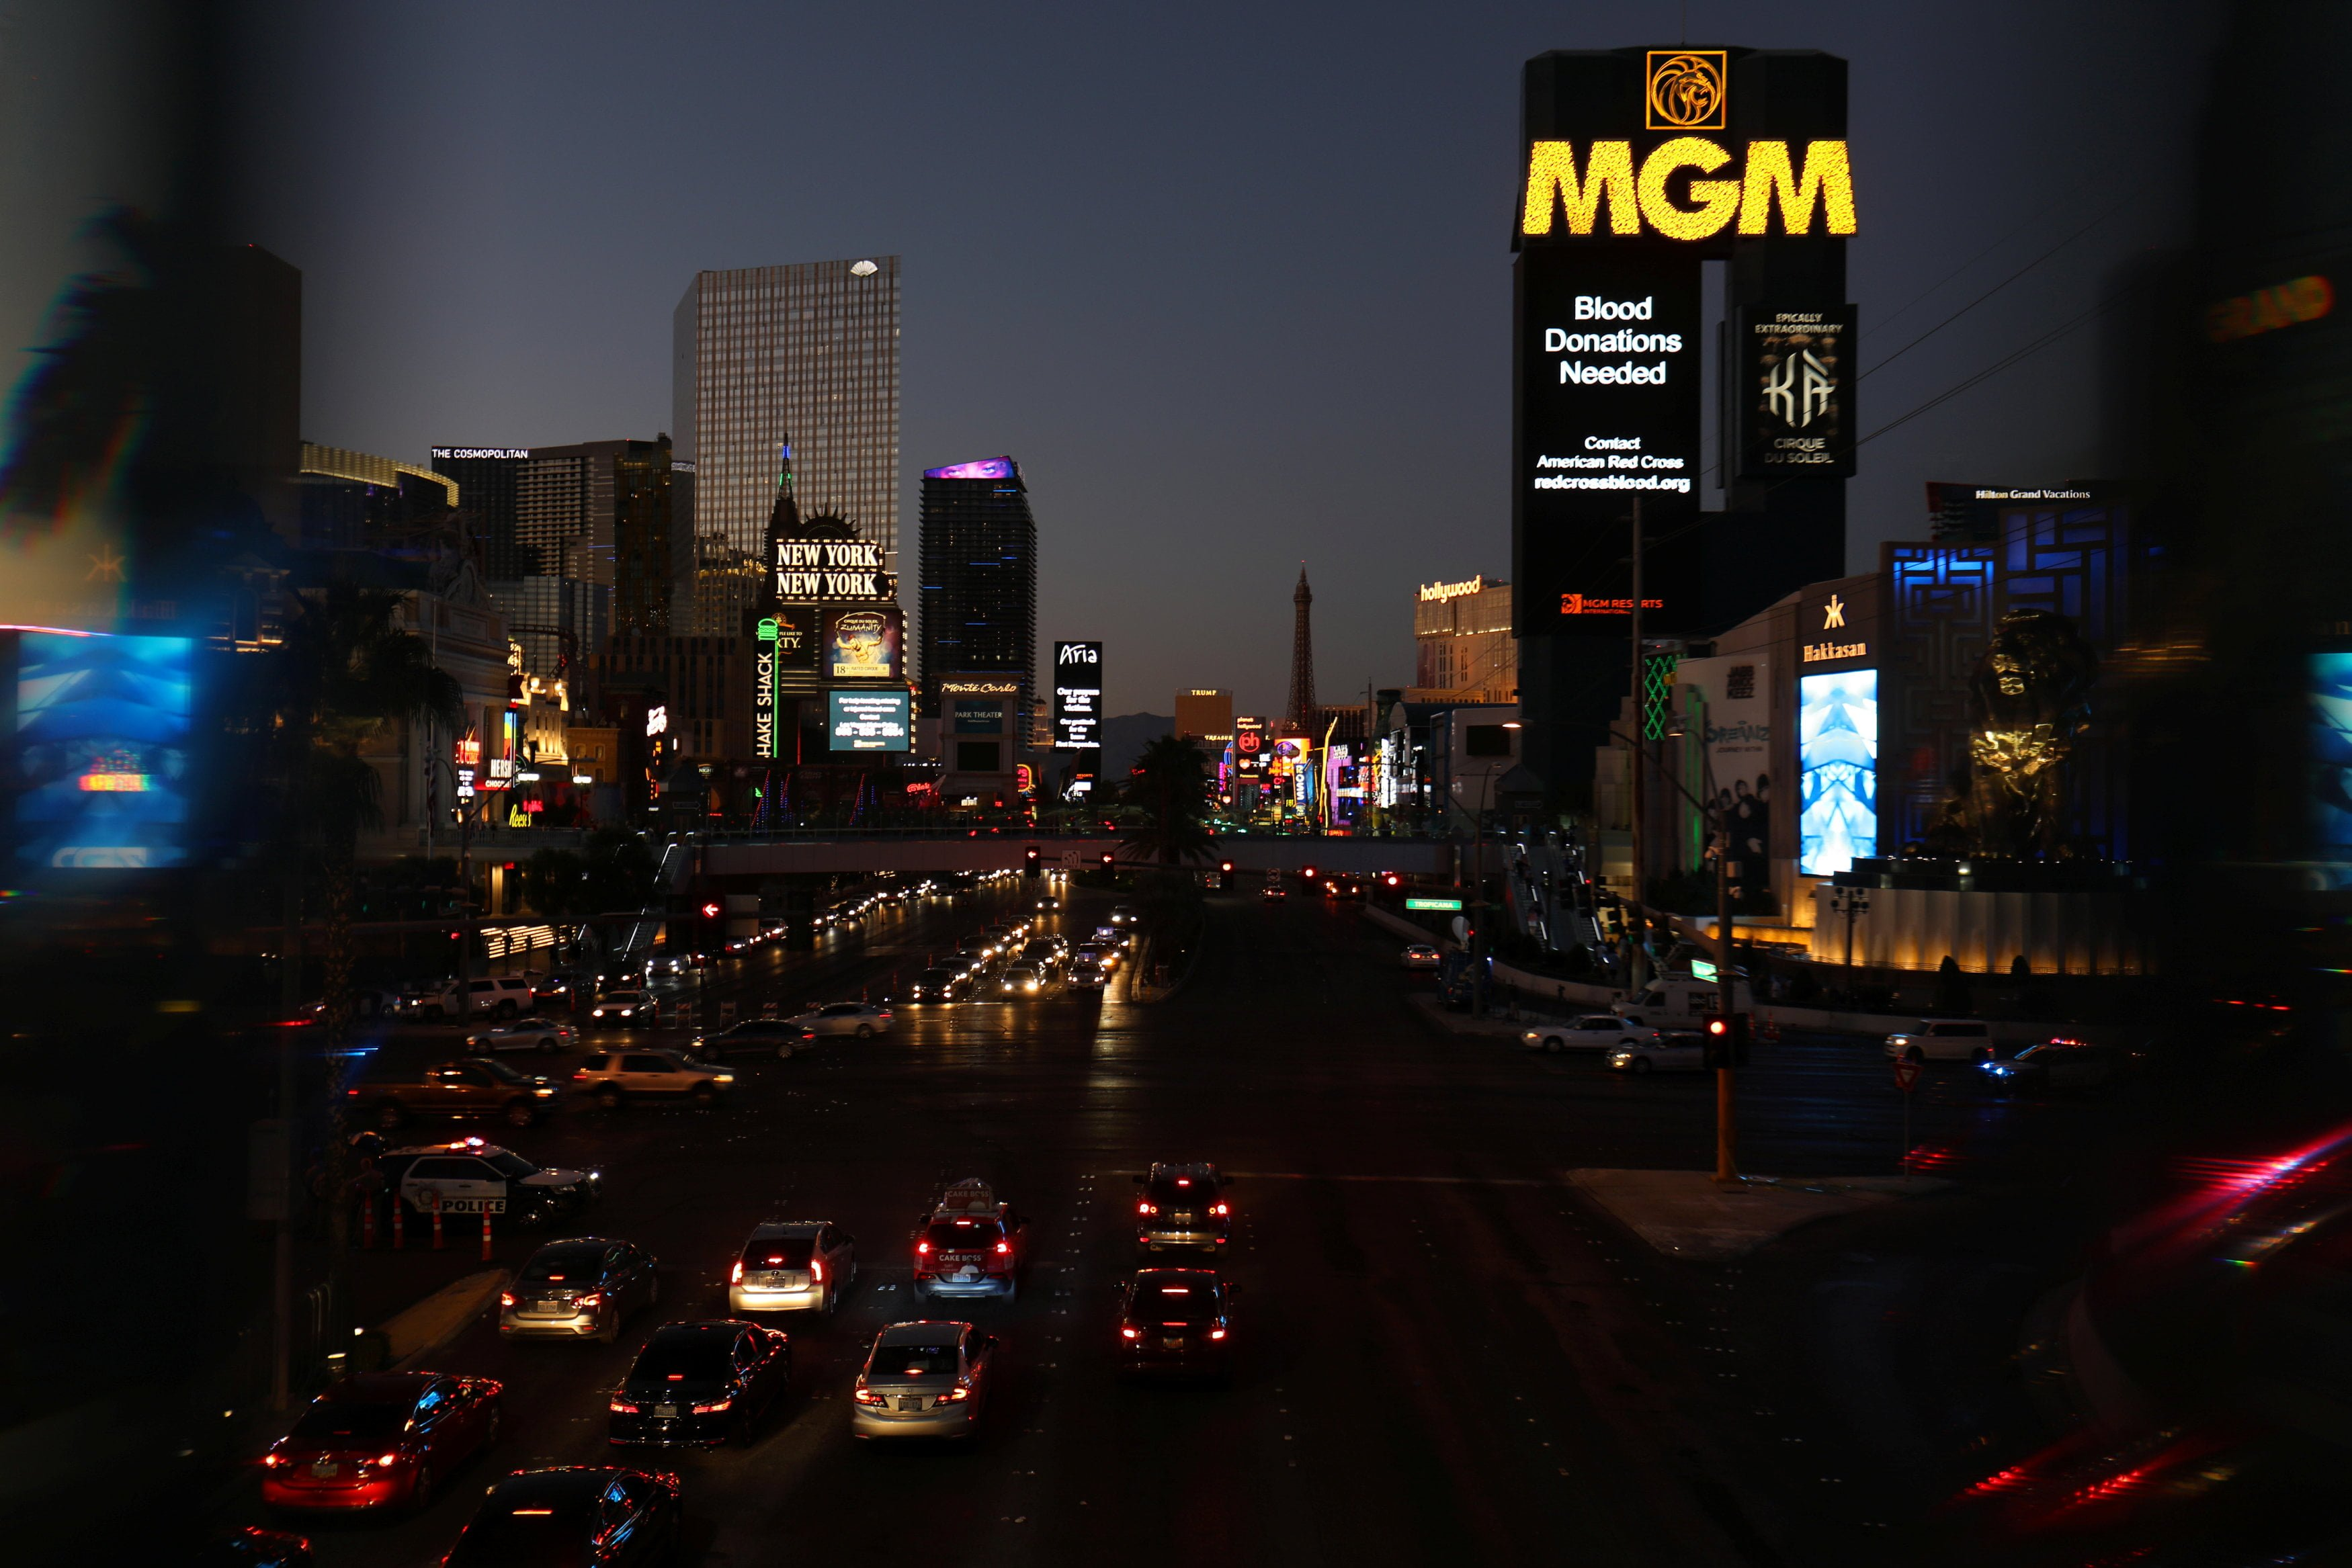 """A sign reading """"Blood Donations Needed"""" is seen in Las Vegas Boulevard after a mass shooing at the Route 91 Harvest Country Music Festival in Las Vegas, Nevada"""